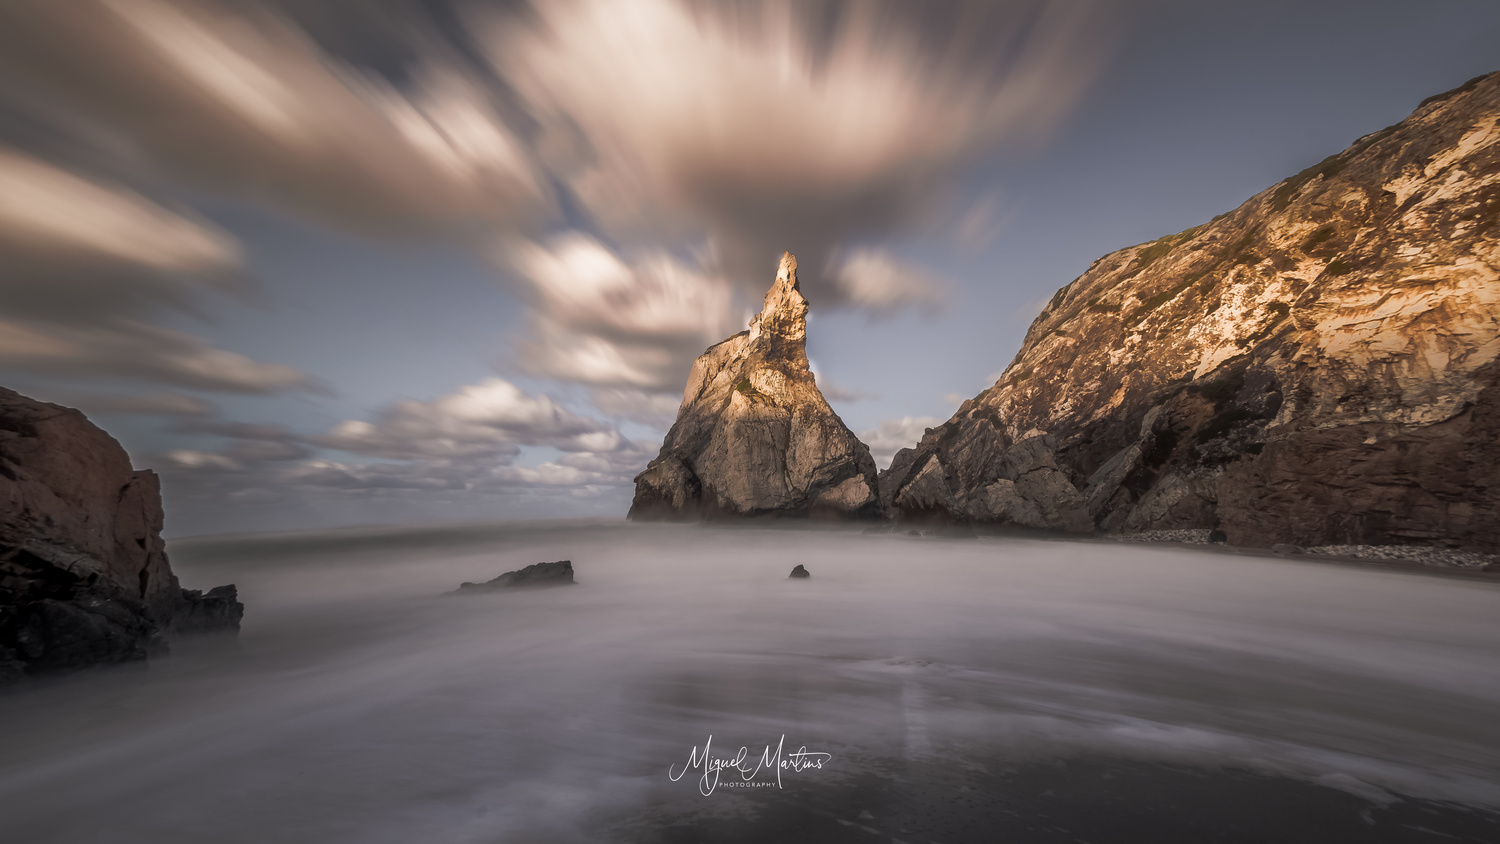 Controlled light by Miguel Martins